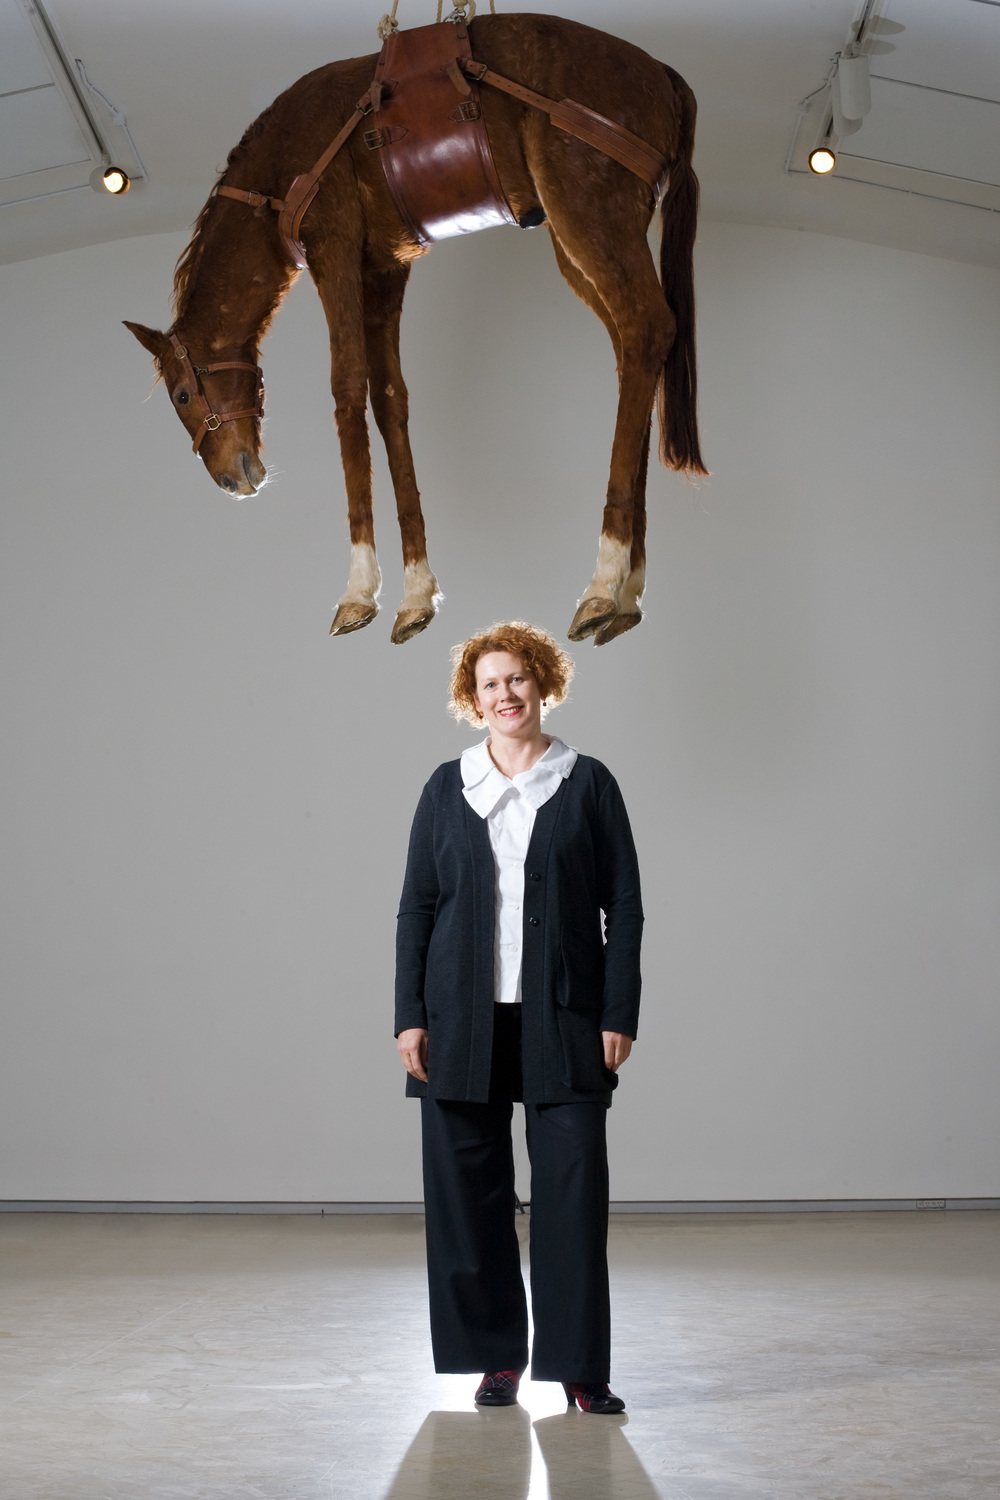 Elizabeth Ann MacGregor from the Museum of Contemporary Art